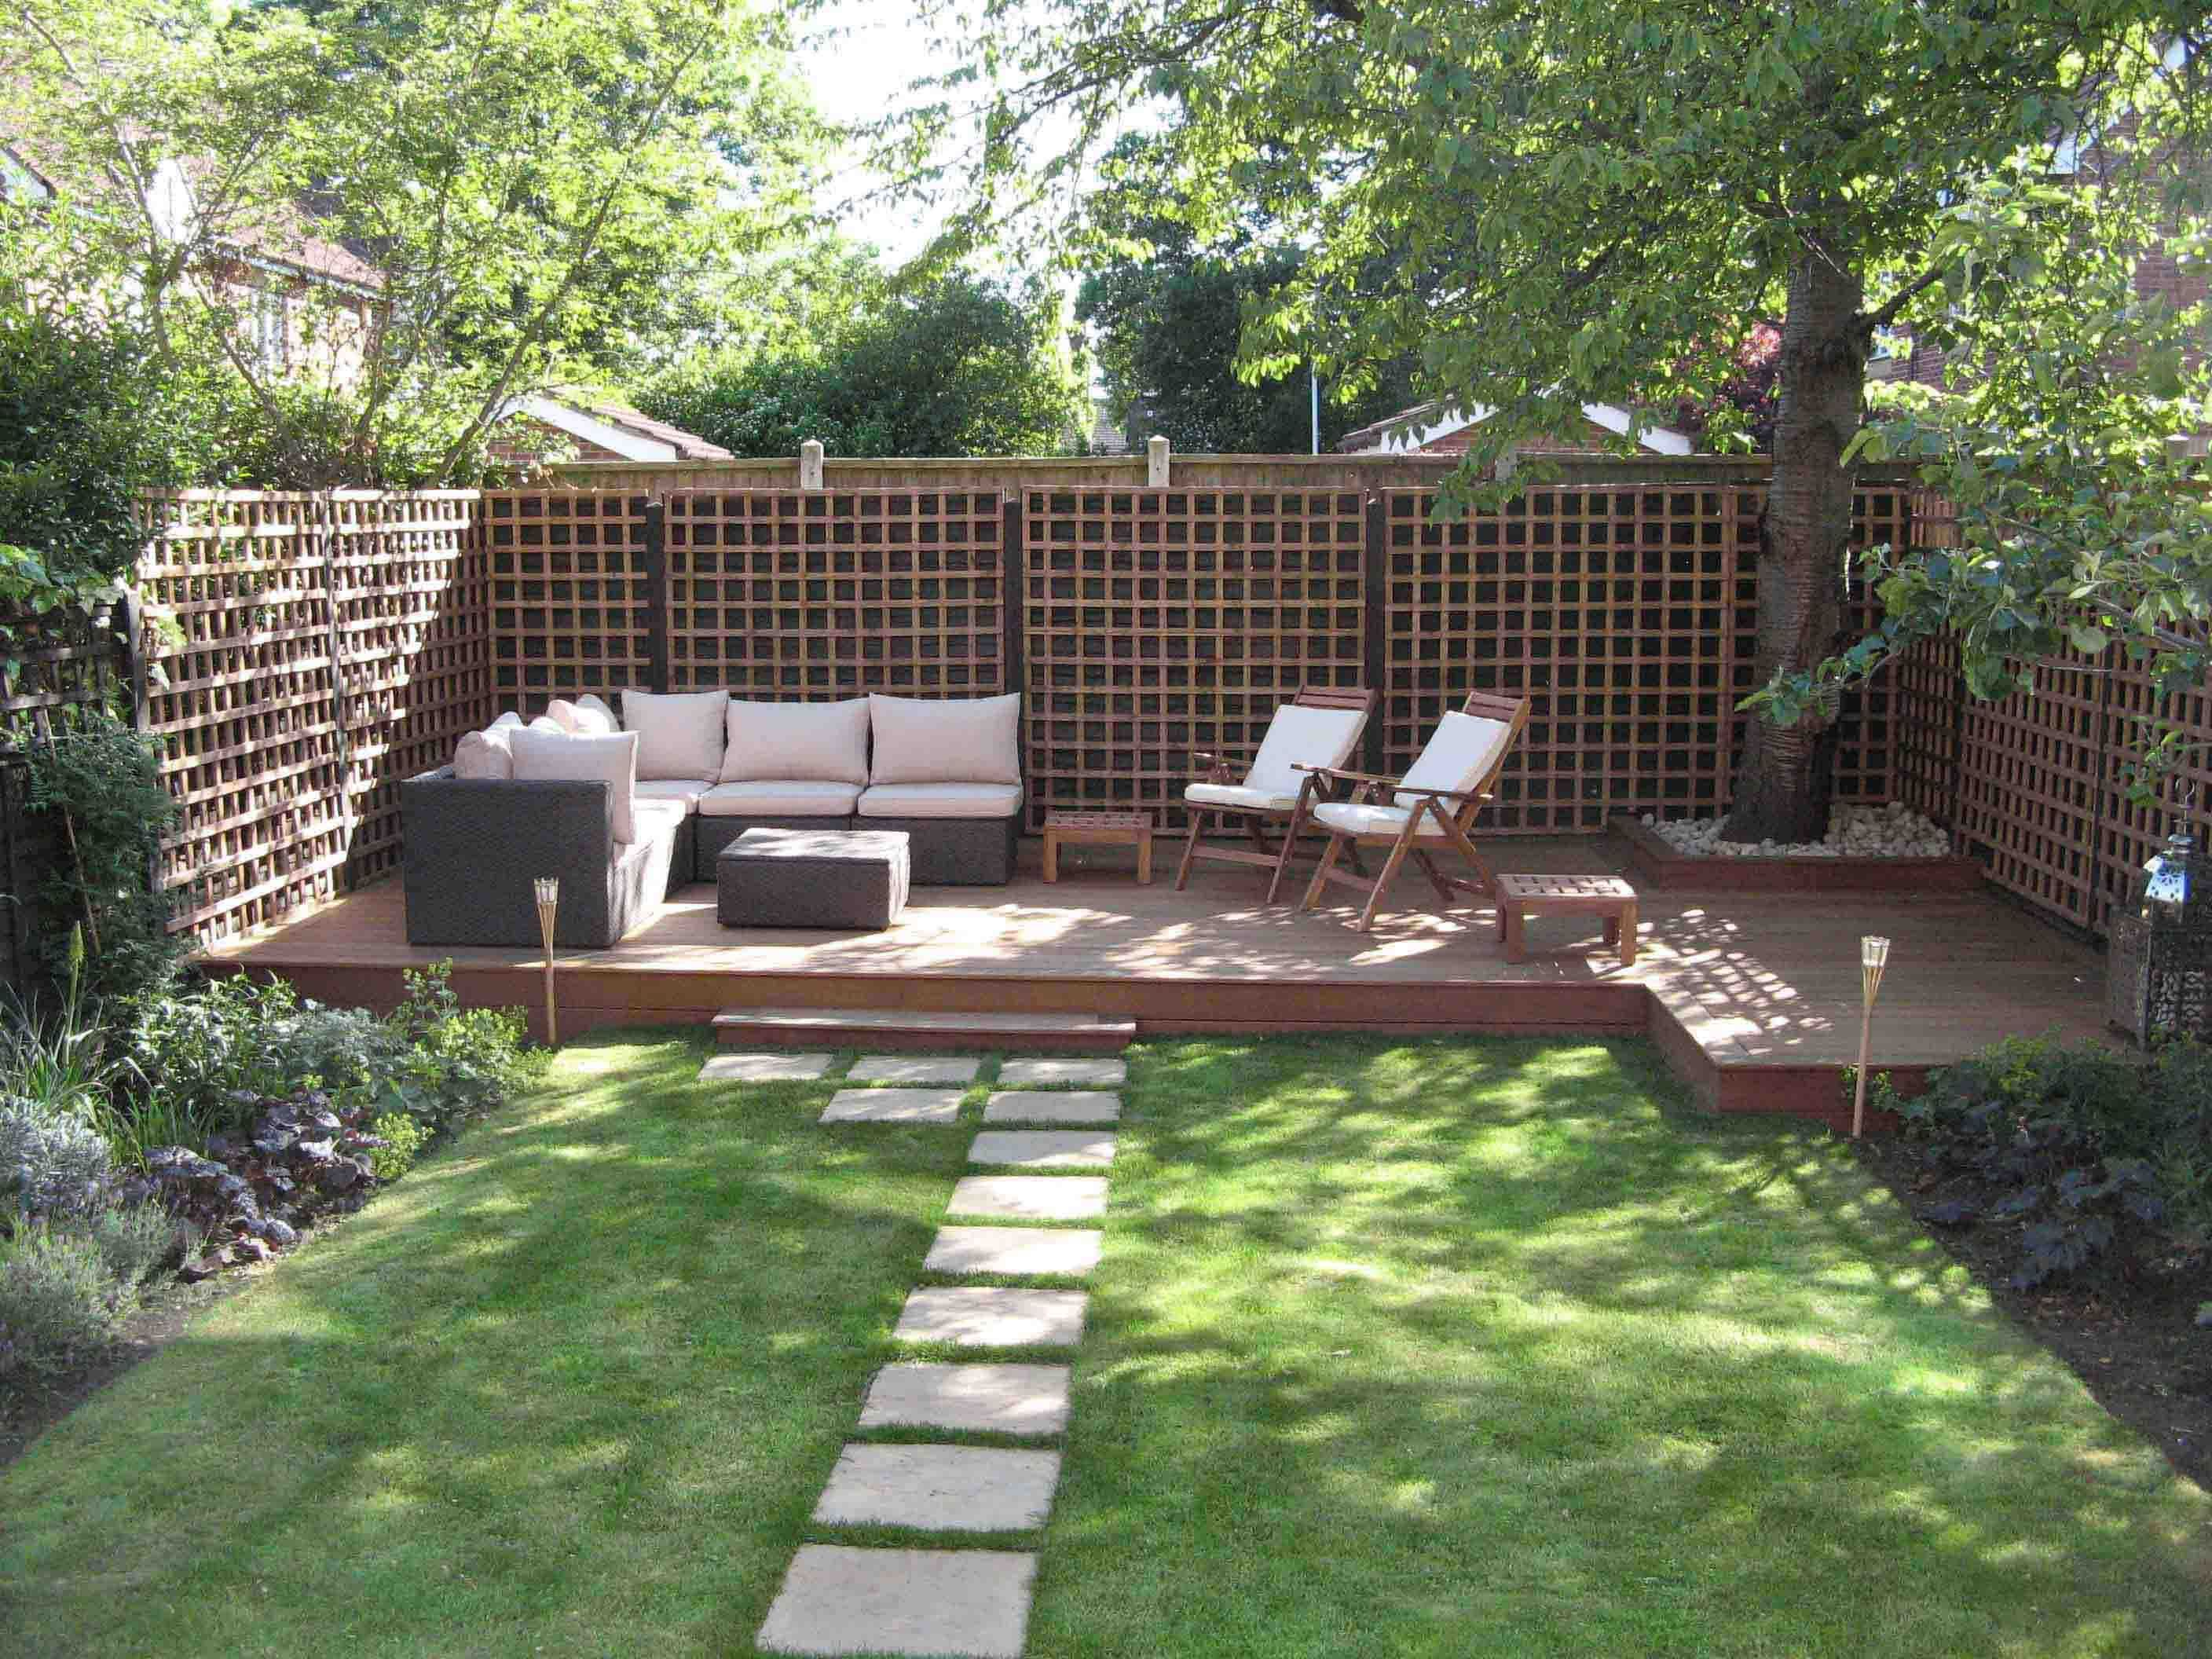 25 Landscape Design For Small Spaces Gardens Decks And Backyards